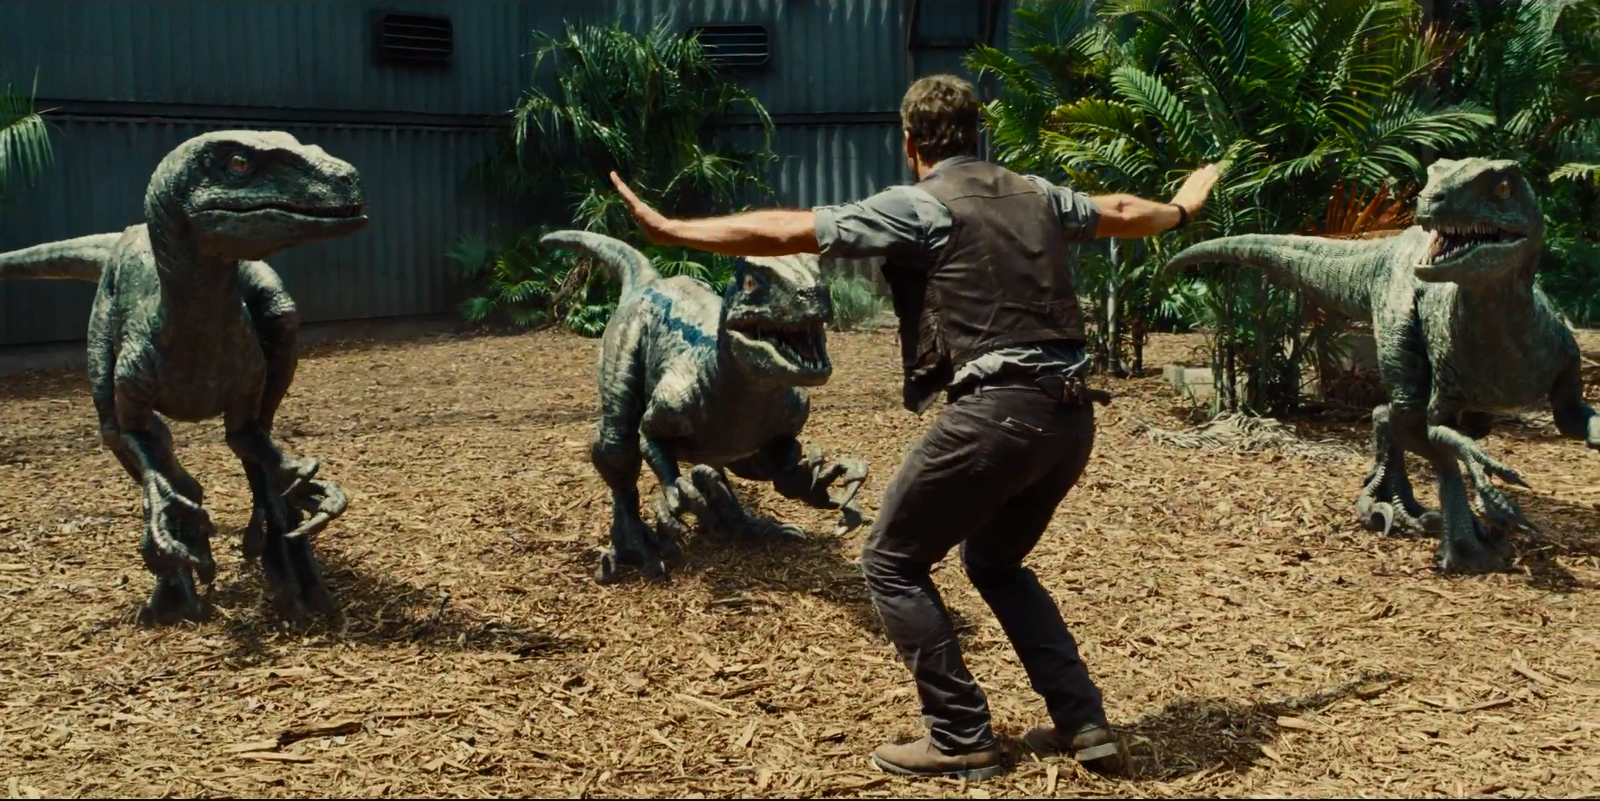 Jurassic World Is Lazy, But You Knew That And Saw It Anyway, Didn't You?